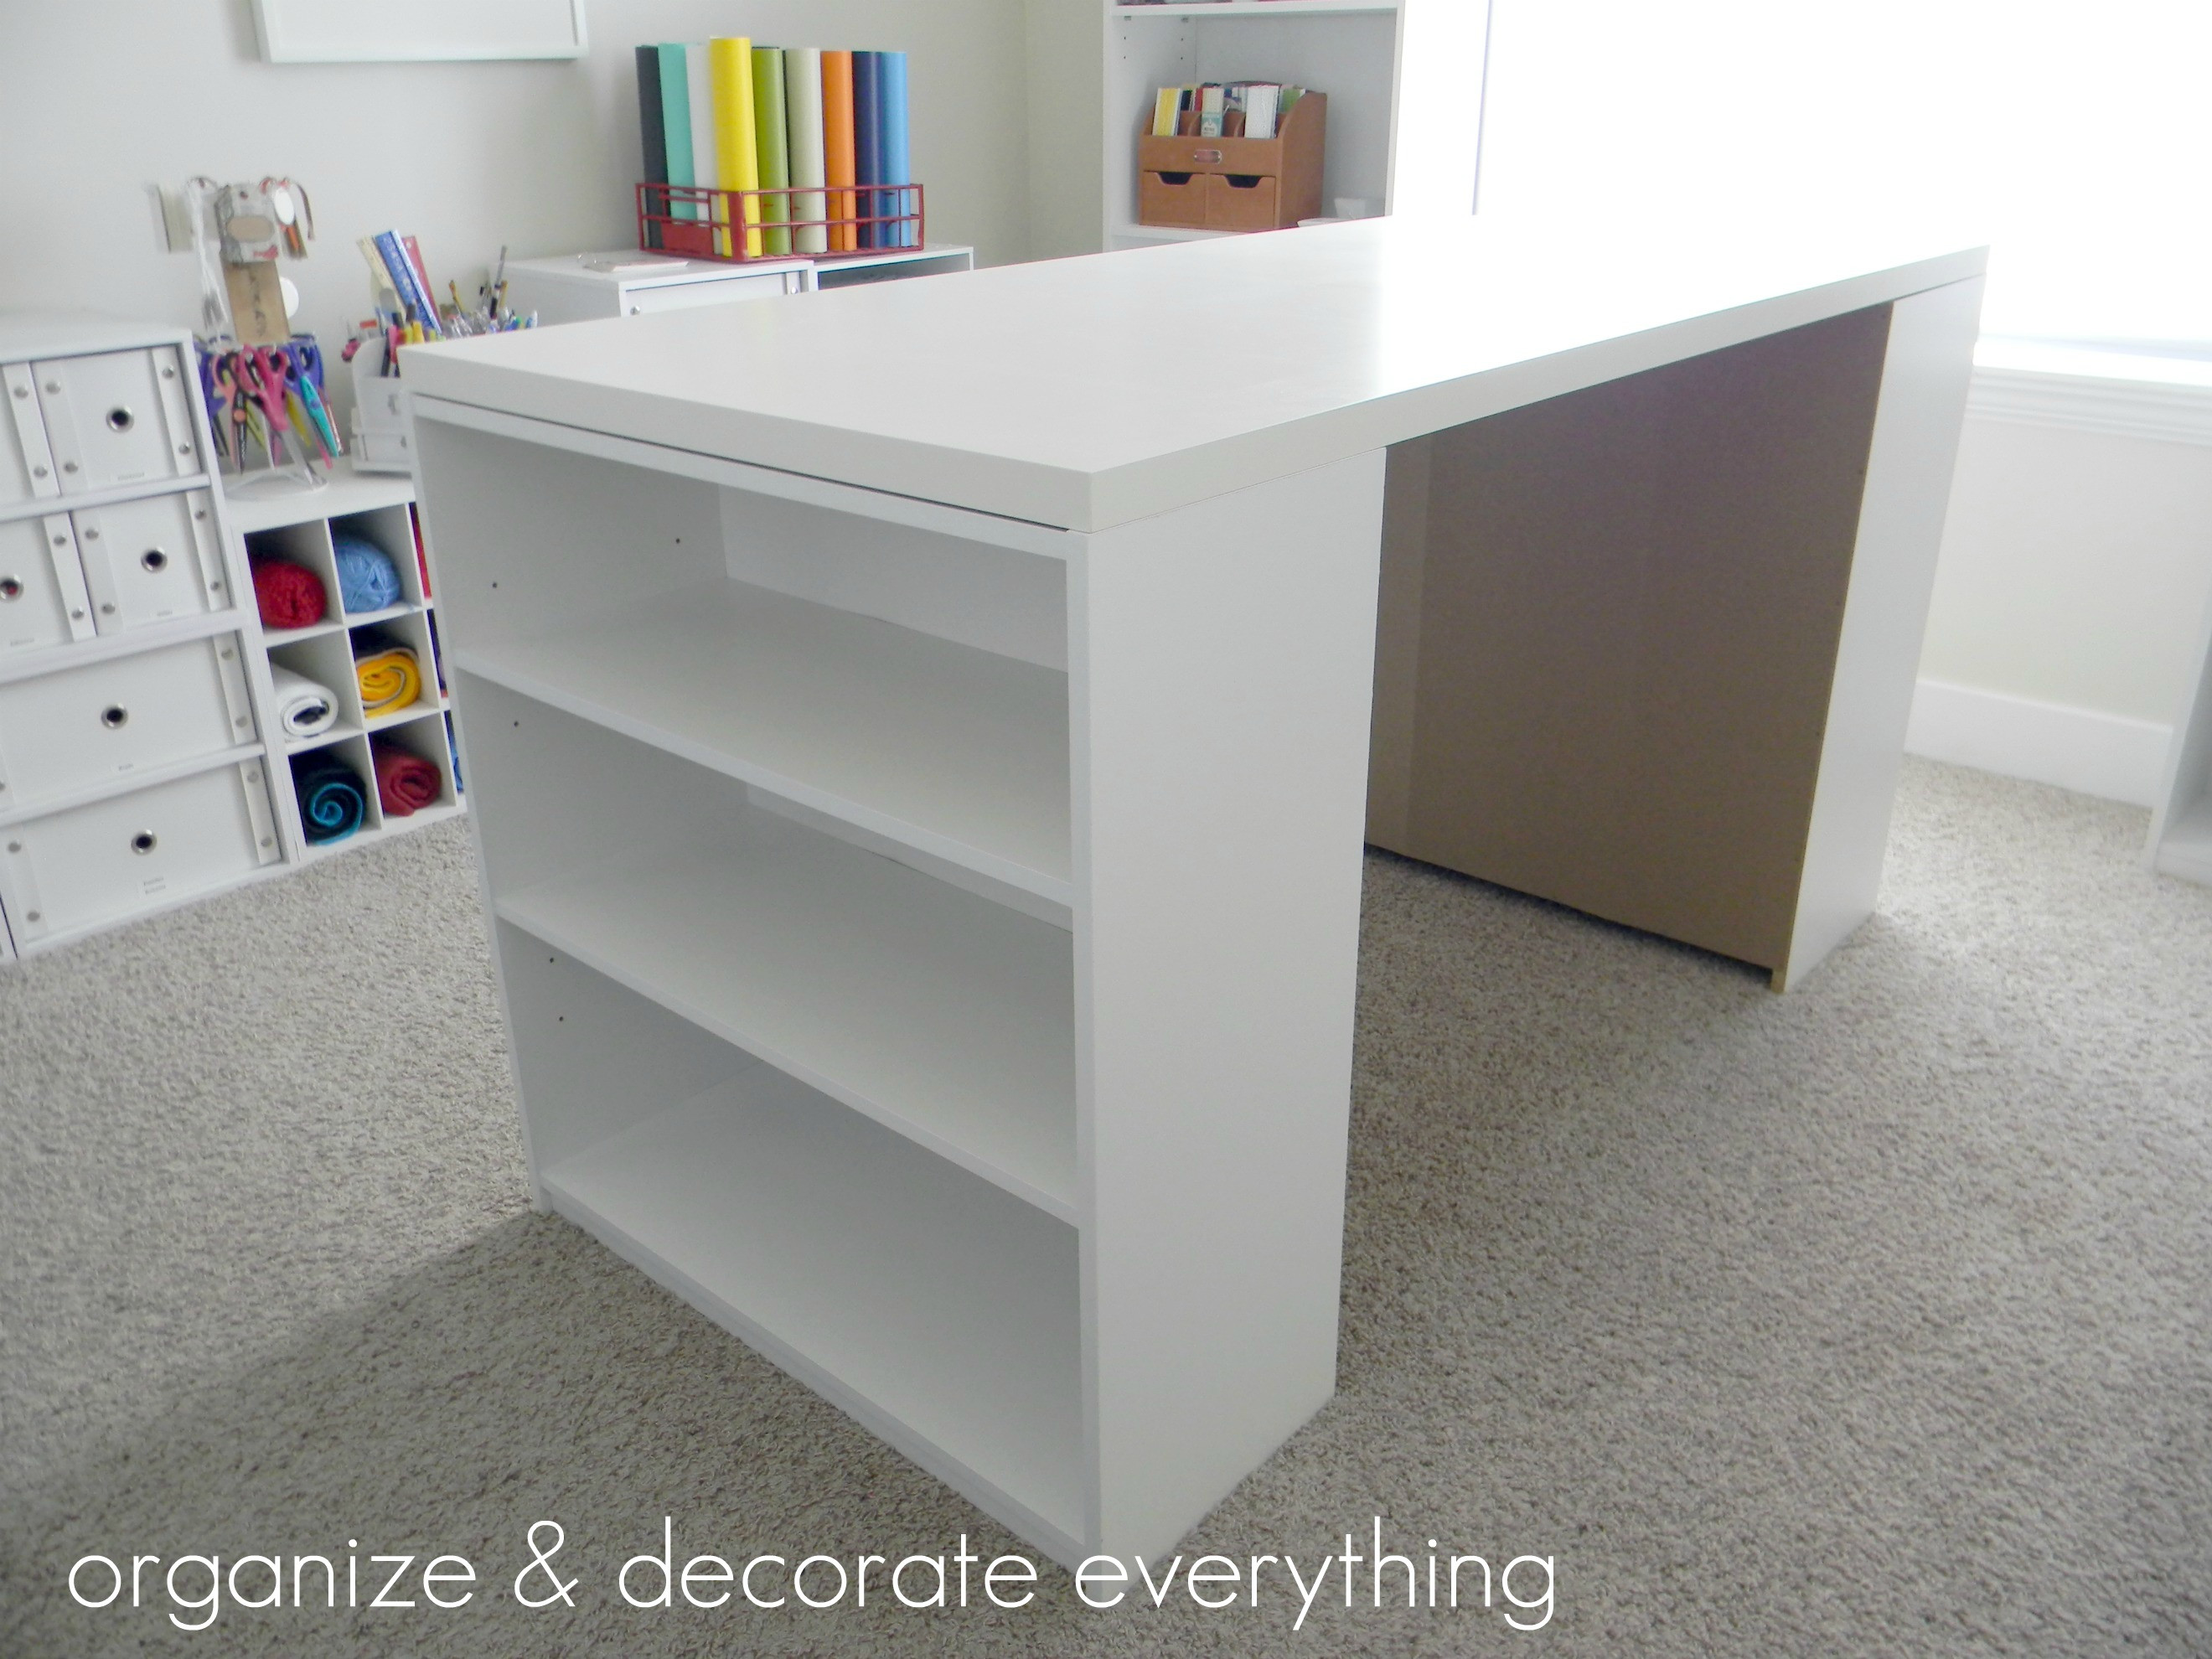 Best ideas about Craft Desk Ideas . Save or Pin Make Your Own DIY Craft Table Using Inexpensive Pieces Now.